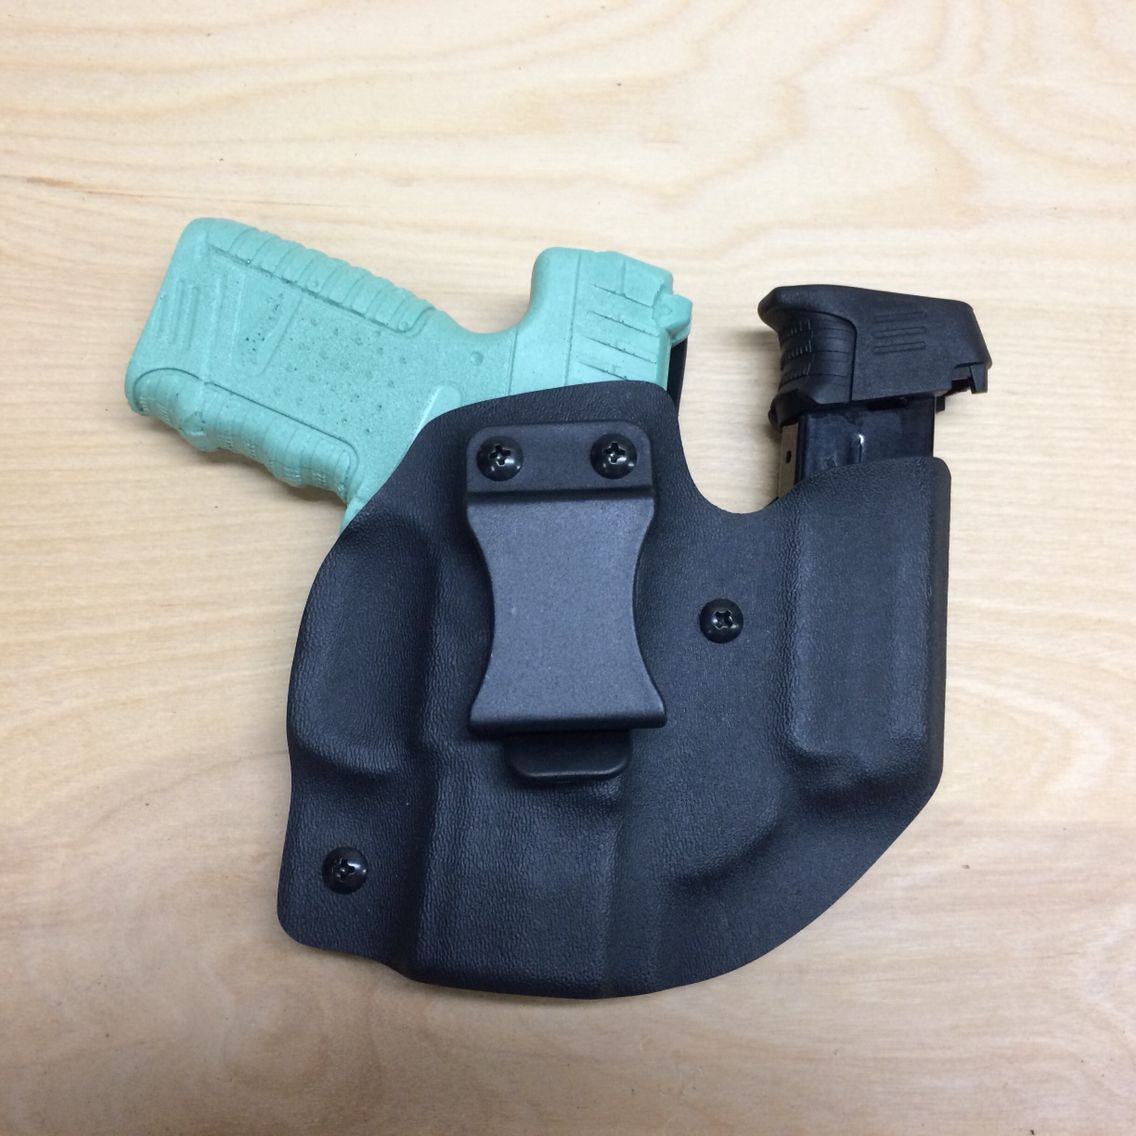 Wolf Pack AIWB holster/mag holder combo for Walther PPS in